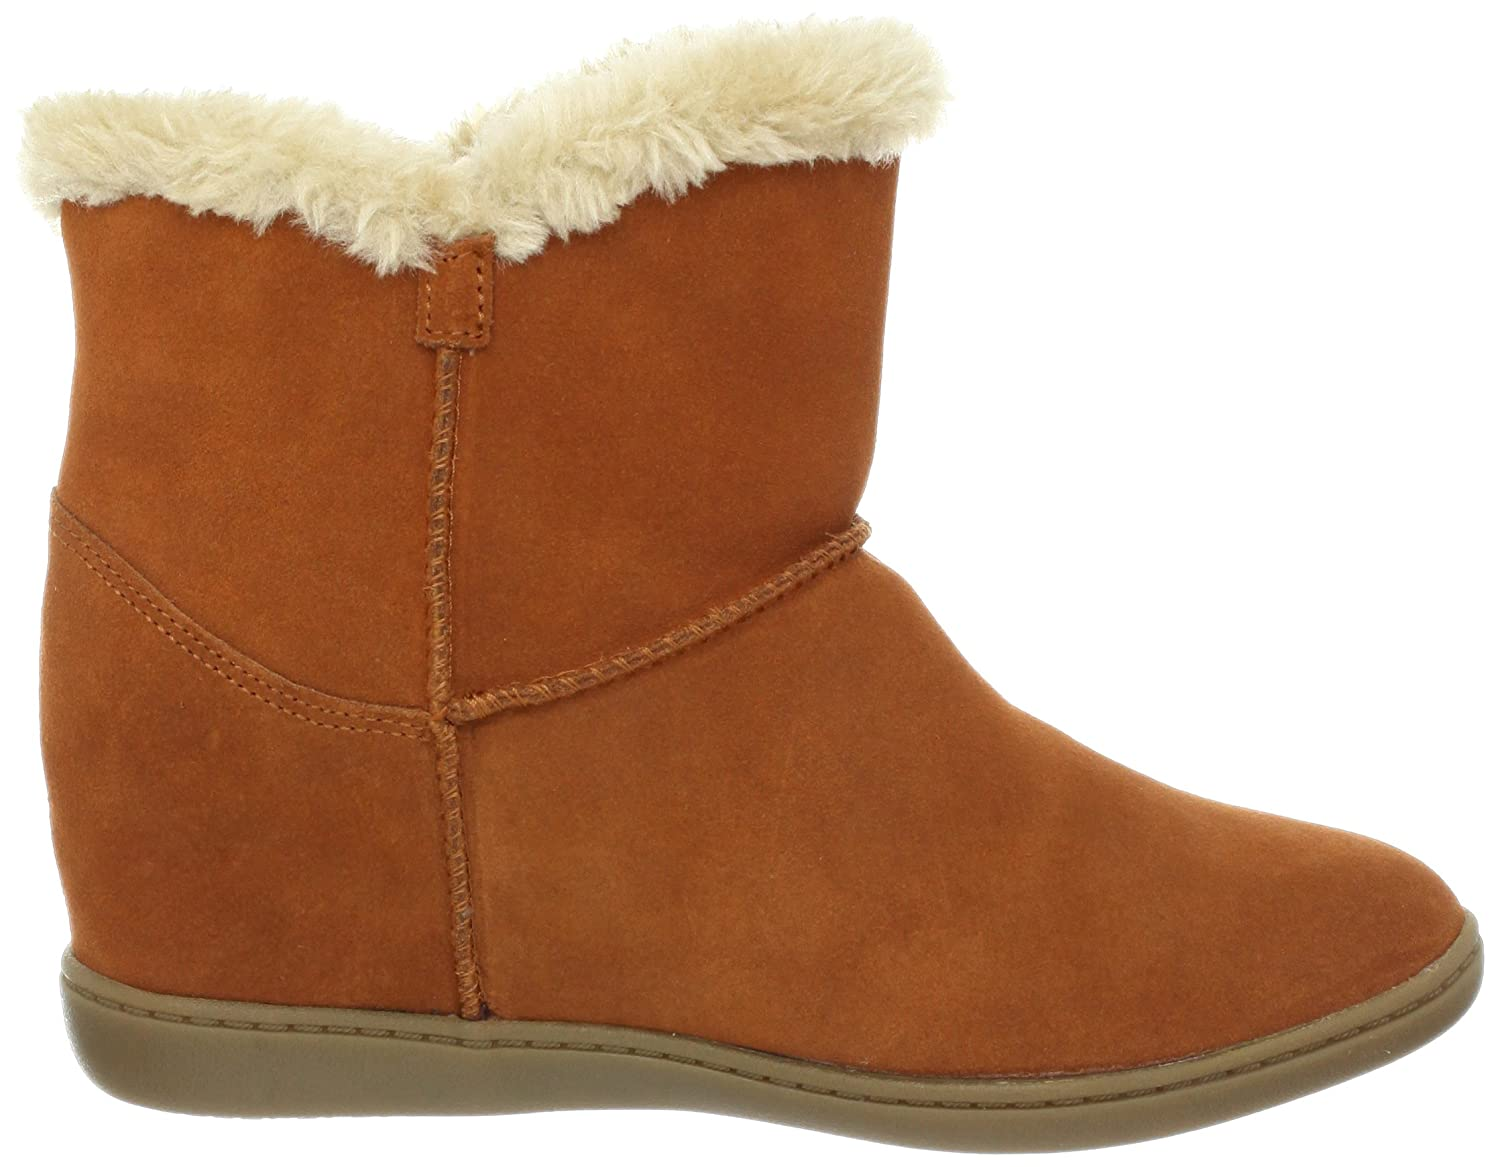 new product f73b3 f6a65 Amazon.com   Skechers Women s Plus 3-Cozy Up Boot, Rust, 8.5 M US   Ankle    Bootie